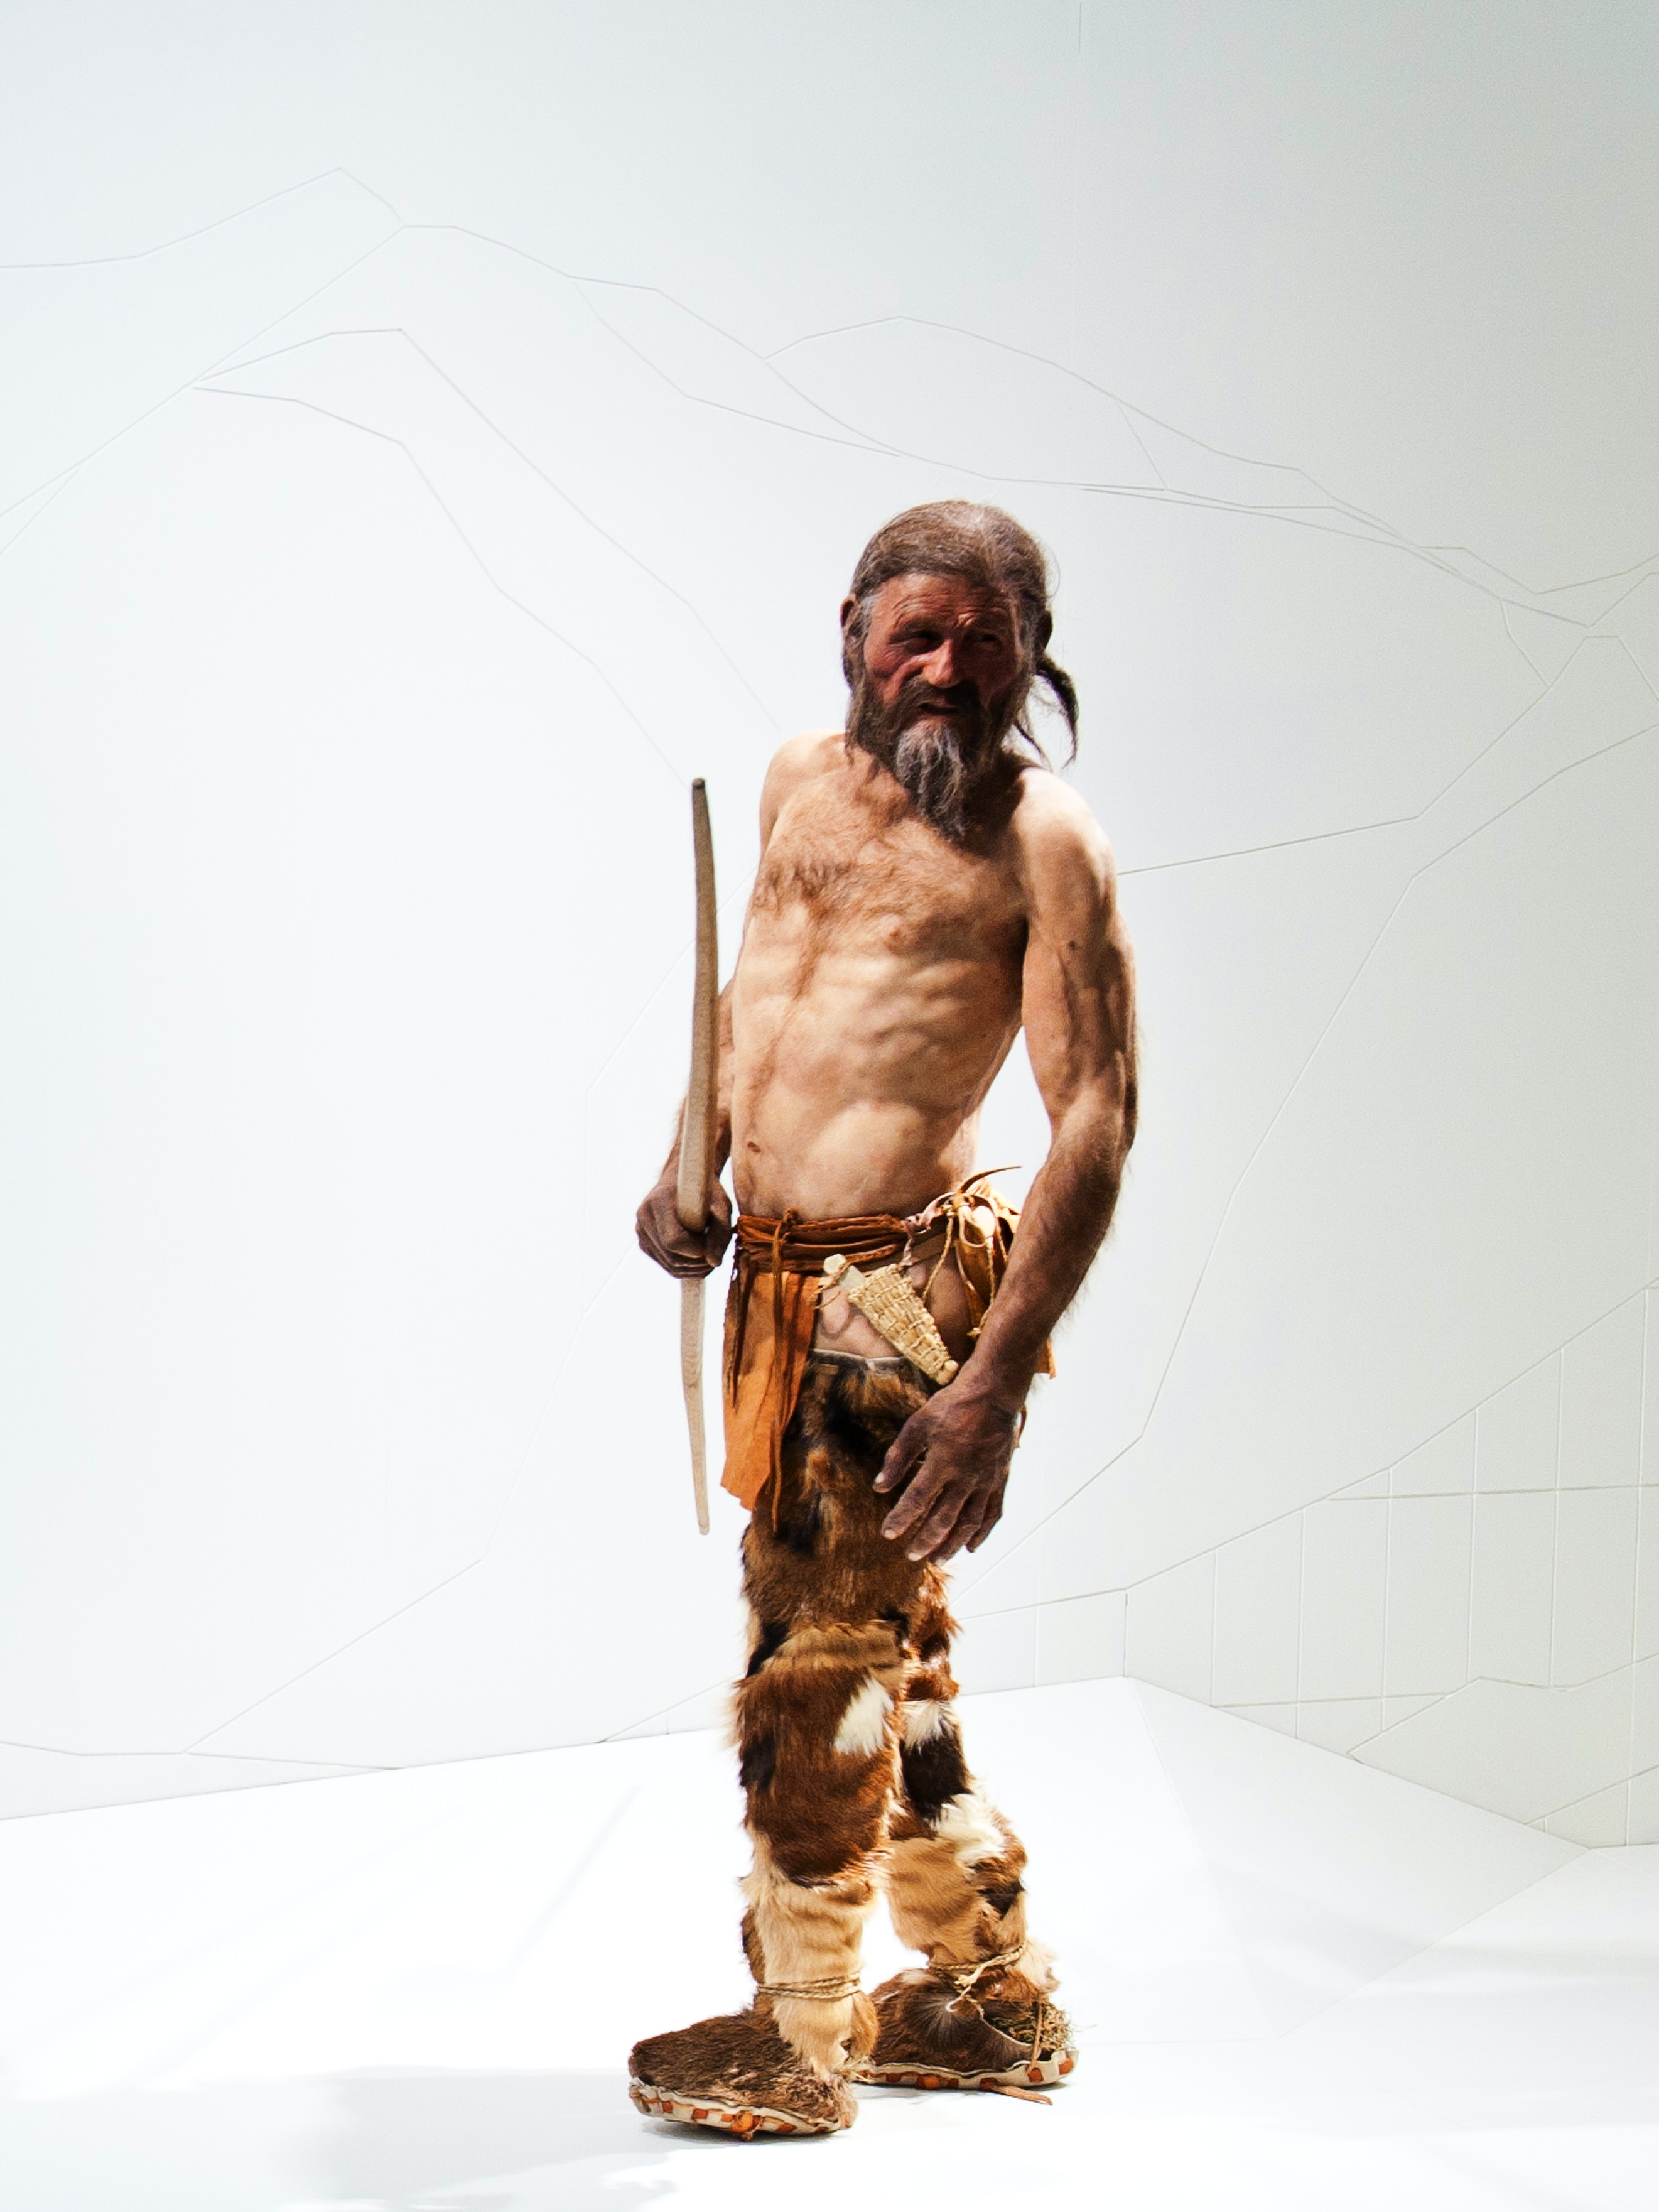 'Otzi the Iceman' Discovered - National Geographic Society |Otzi The Iceman